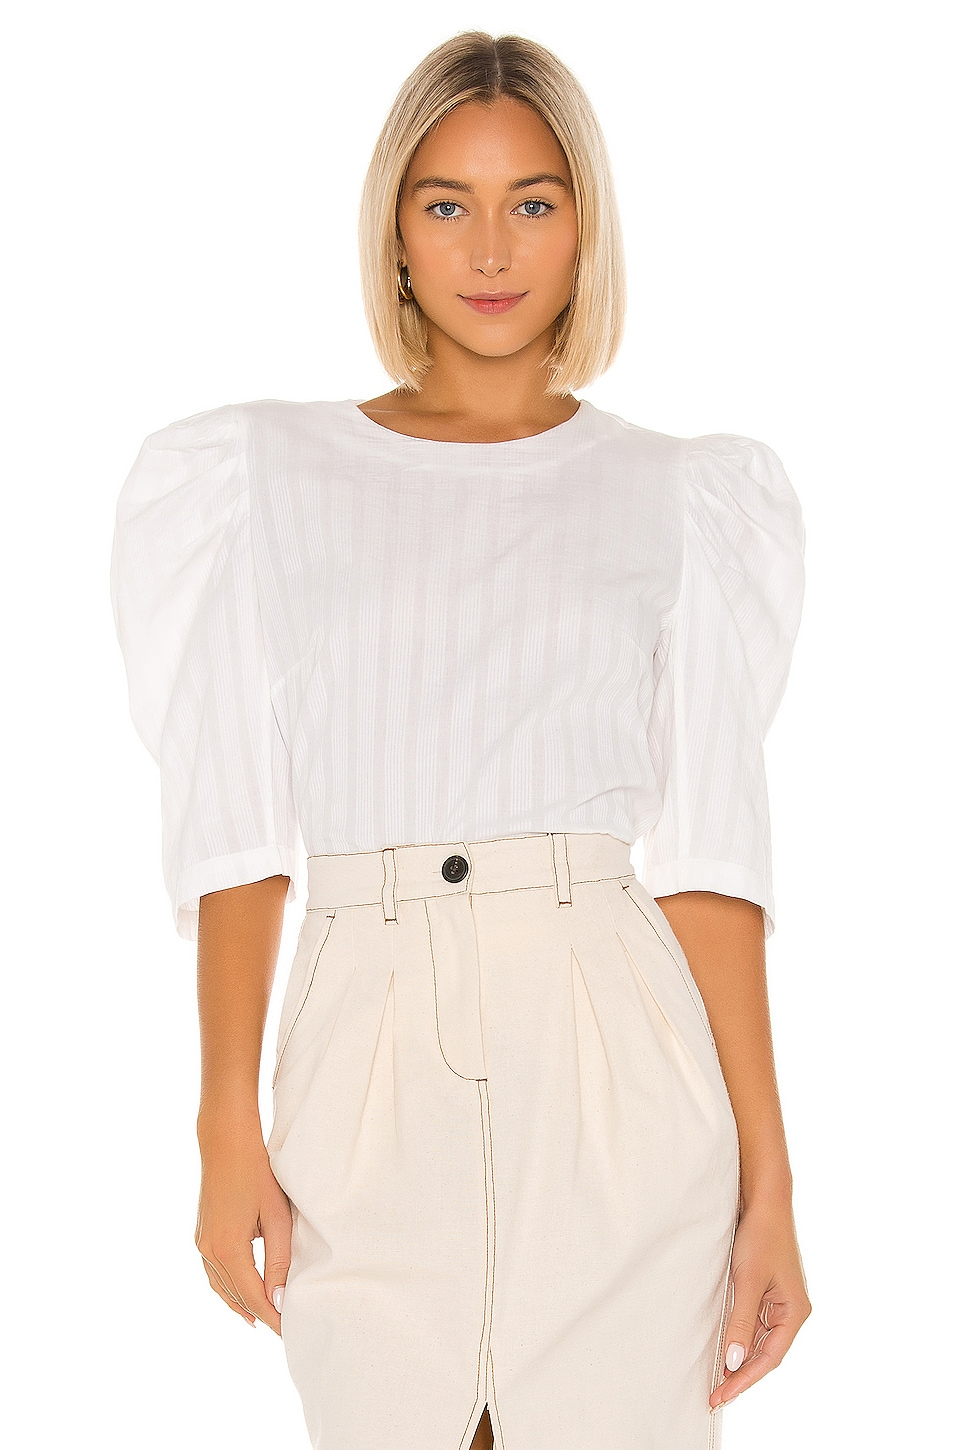 Mara Hoffman Katya Blouse in White